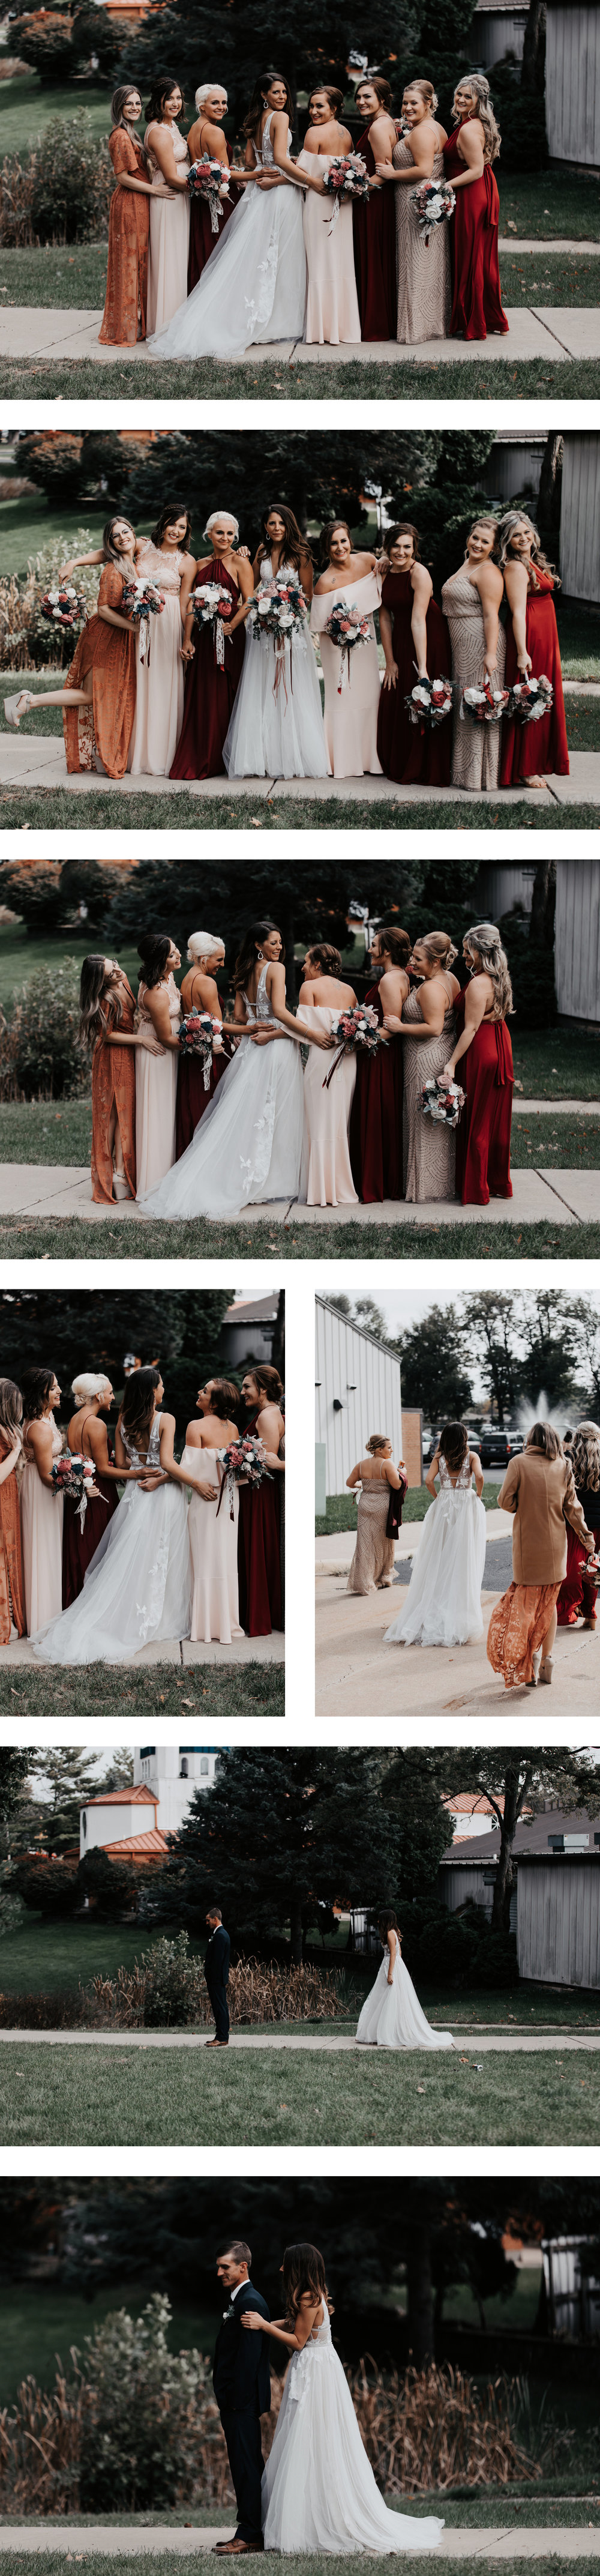 The Pollack Wedding 9.jpg